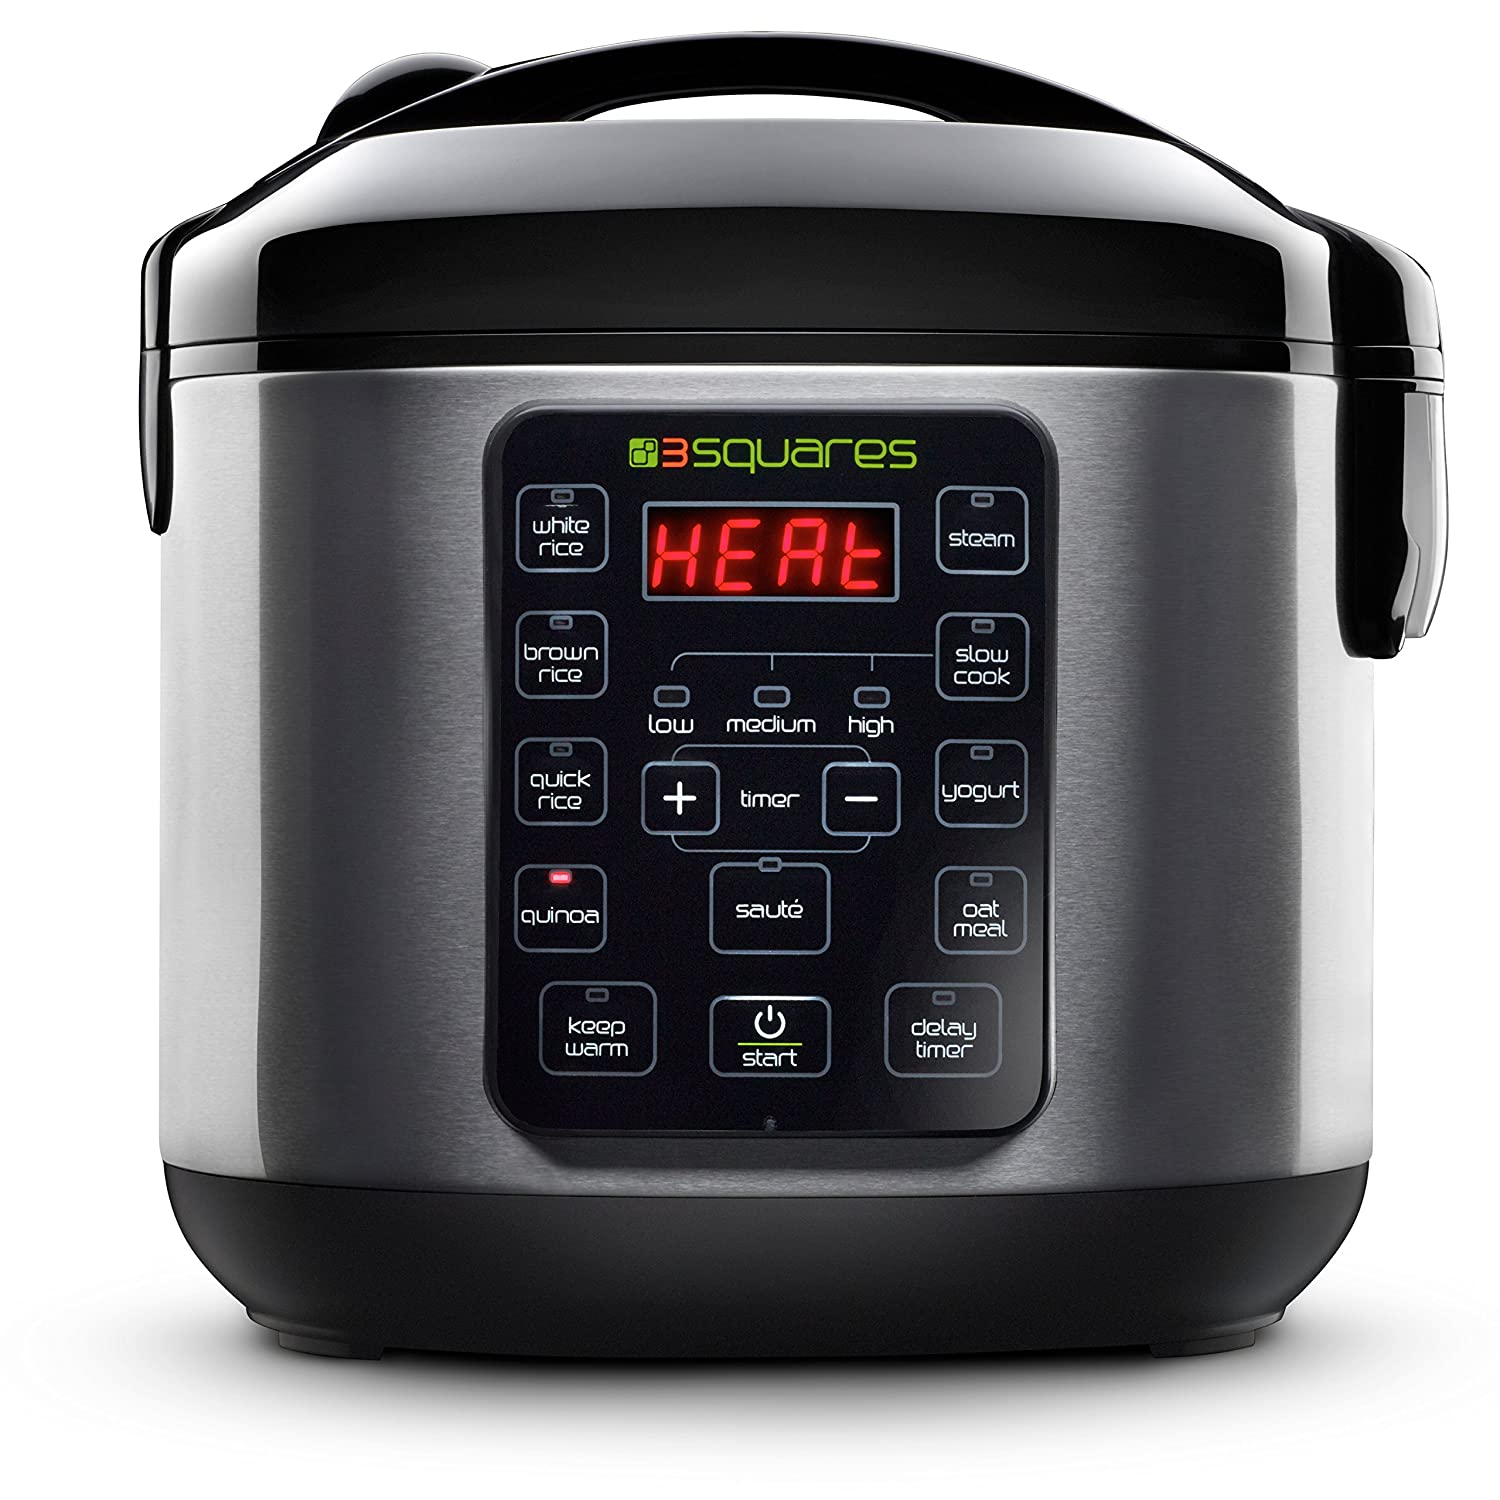 3 Squares 3RC-3050 Rice cooker 20 Cup/4 Qt Stainless Steel/Black